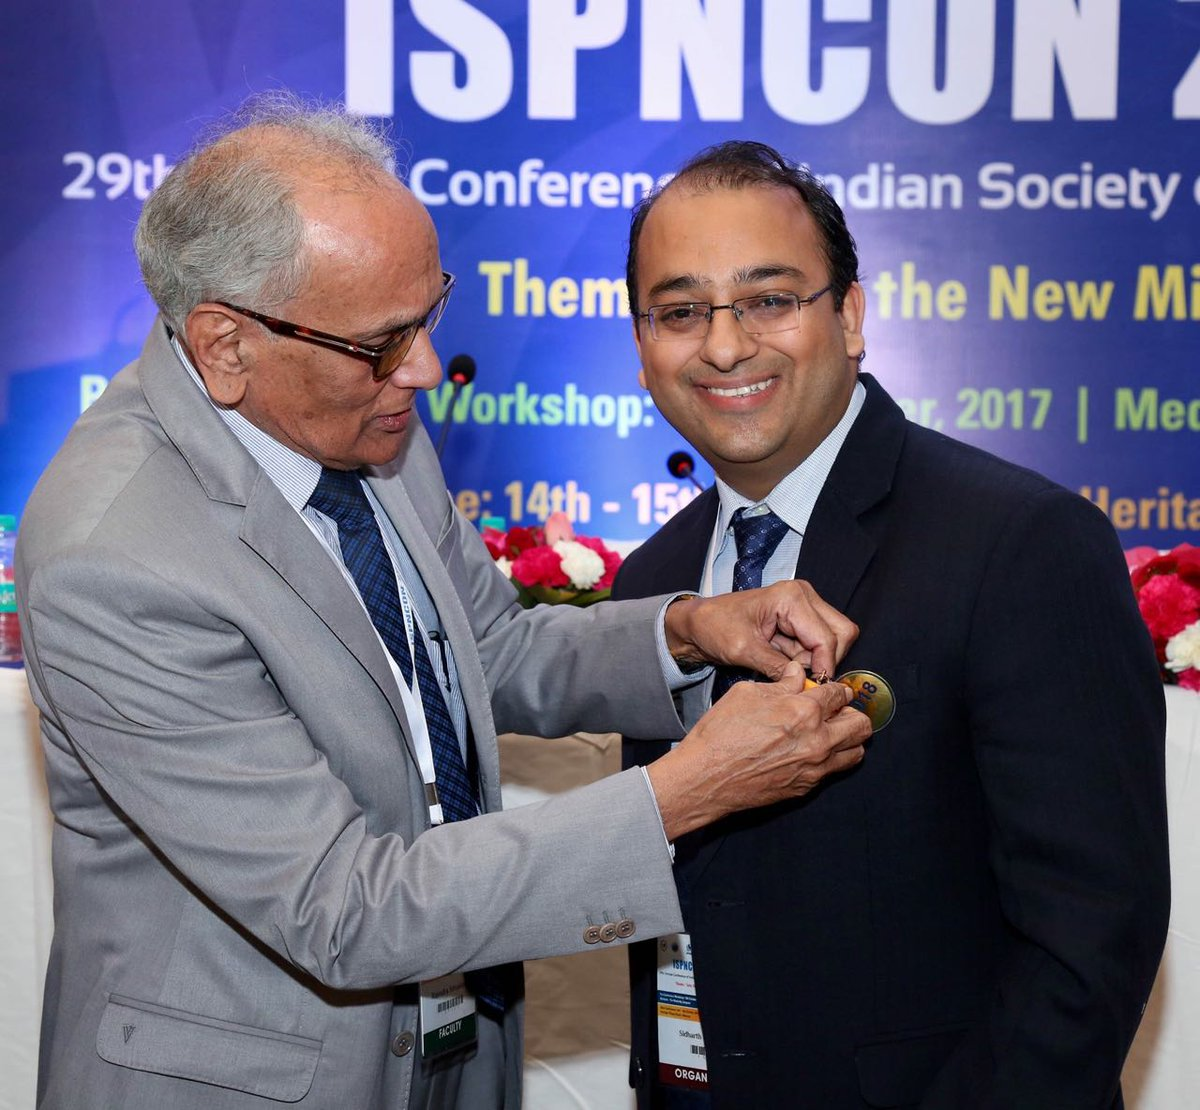 elected &#39;Secretary- Indian Society of Pediatric Nephrology &#39; yesterday. @ISNeducation @ISNkidneycare @IPNA_PedNeph #ispncon2017 <br>http://pic.twitter.com/JX5Vw8zbJp